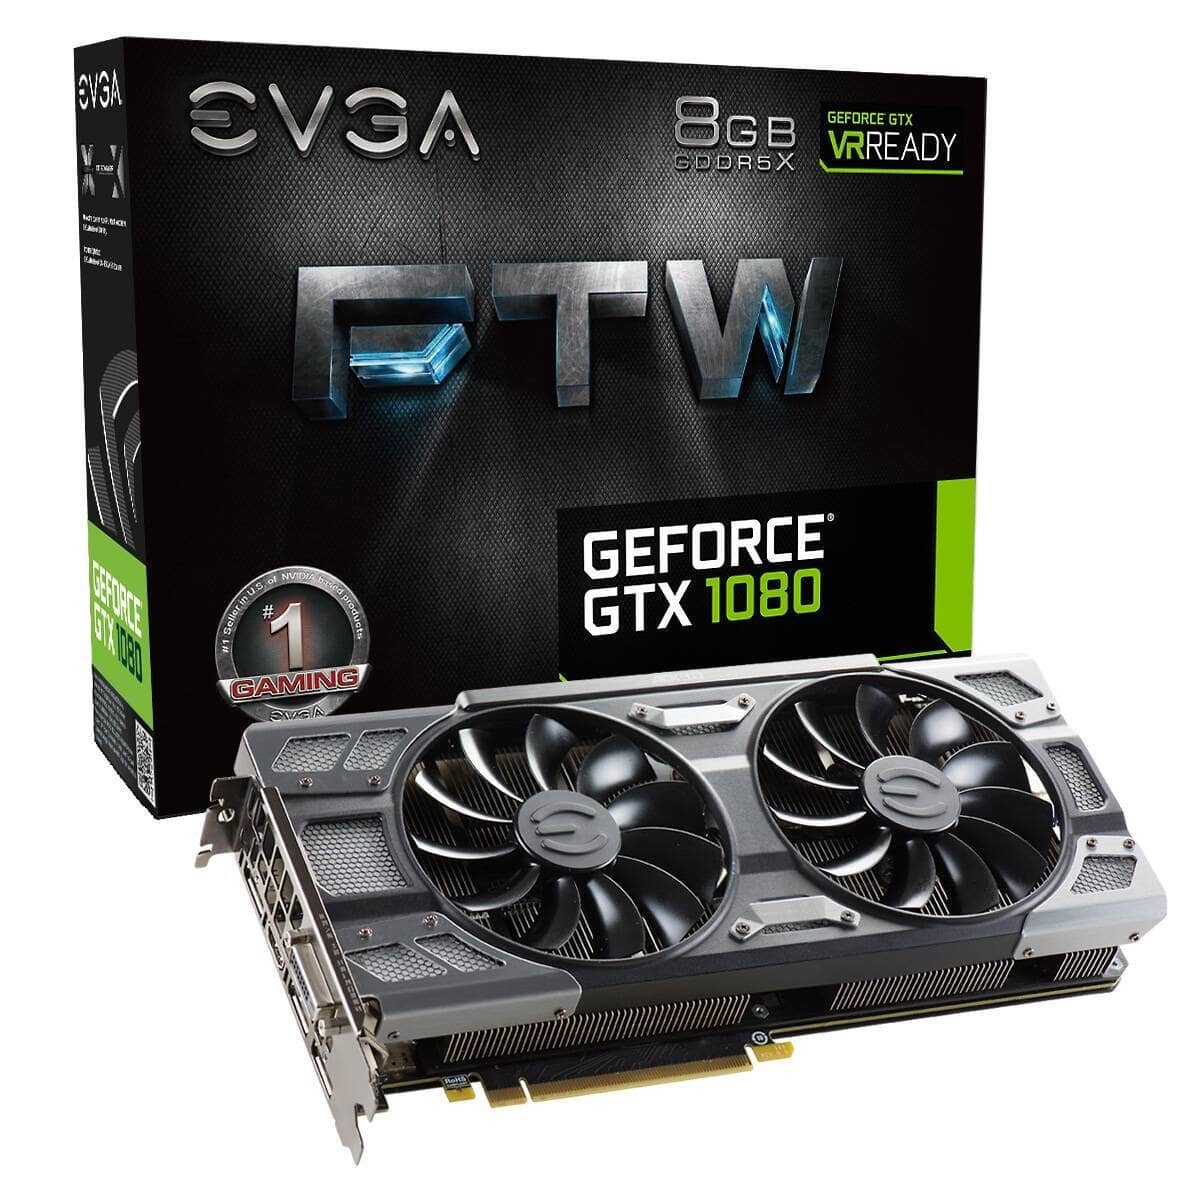 EVGA GTX 1080 FTW - $499 (or $399.99 with AMEX 20% off) $499.99